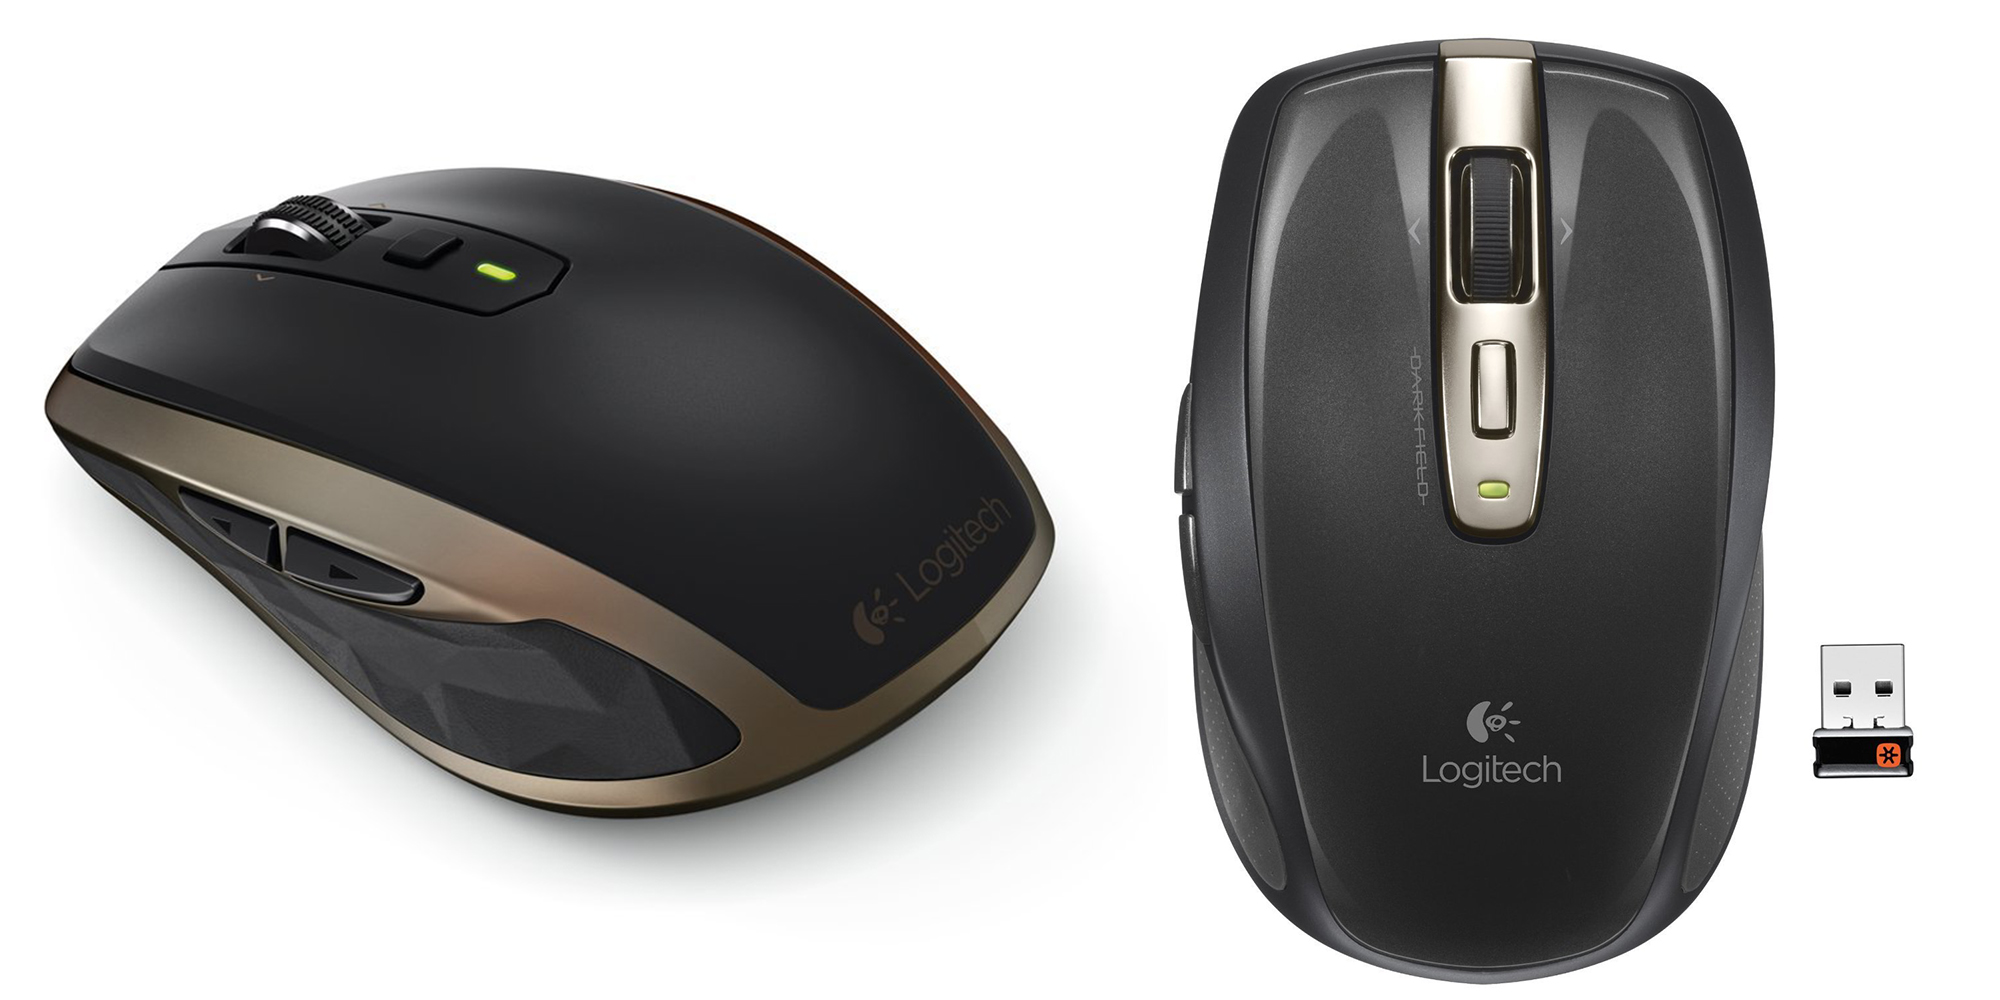 Logitech s popular MX Mouse lineup is on sale today Anywhere 2 $62 Reg $70 more 9to5Toys